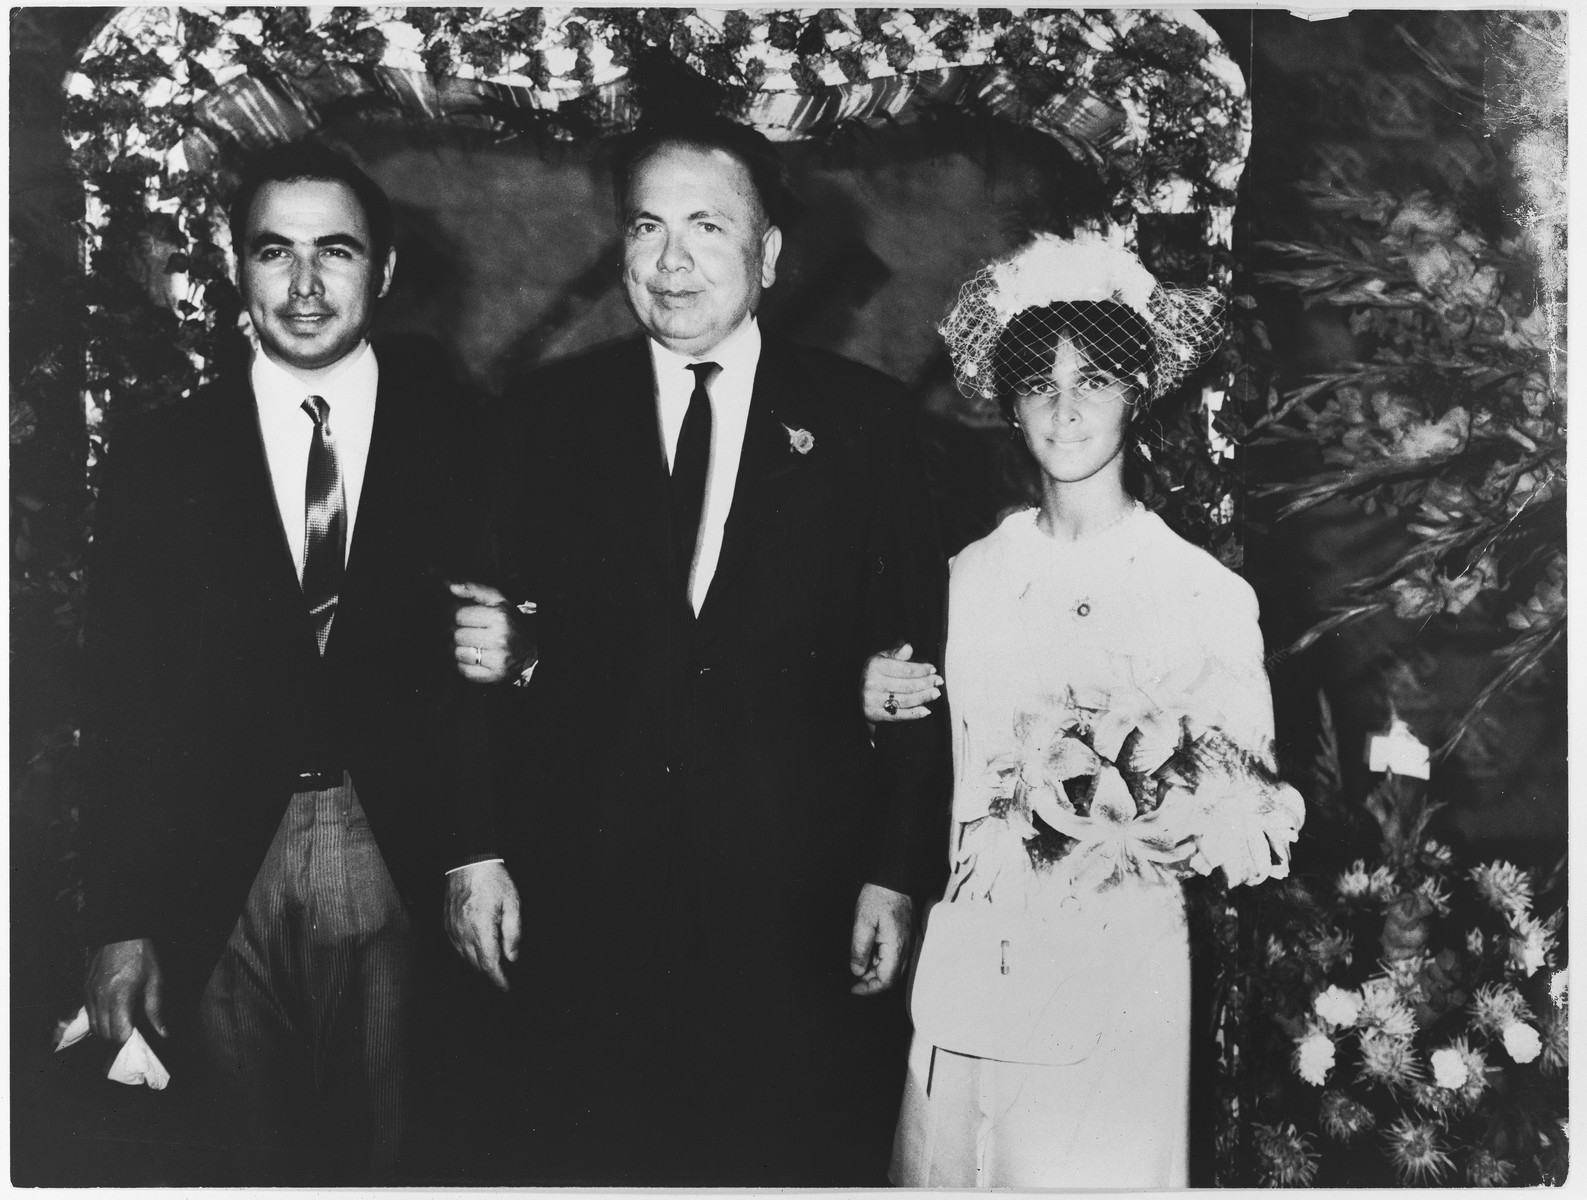 Turkish diplomat Selahatin Ulkumen poses with his son, Memet, and daughter-in-law at their wedding.